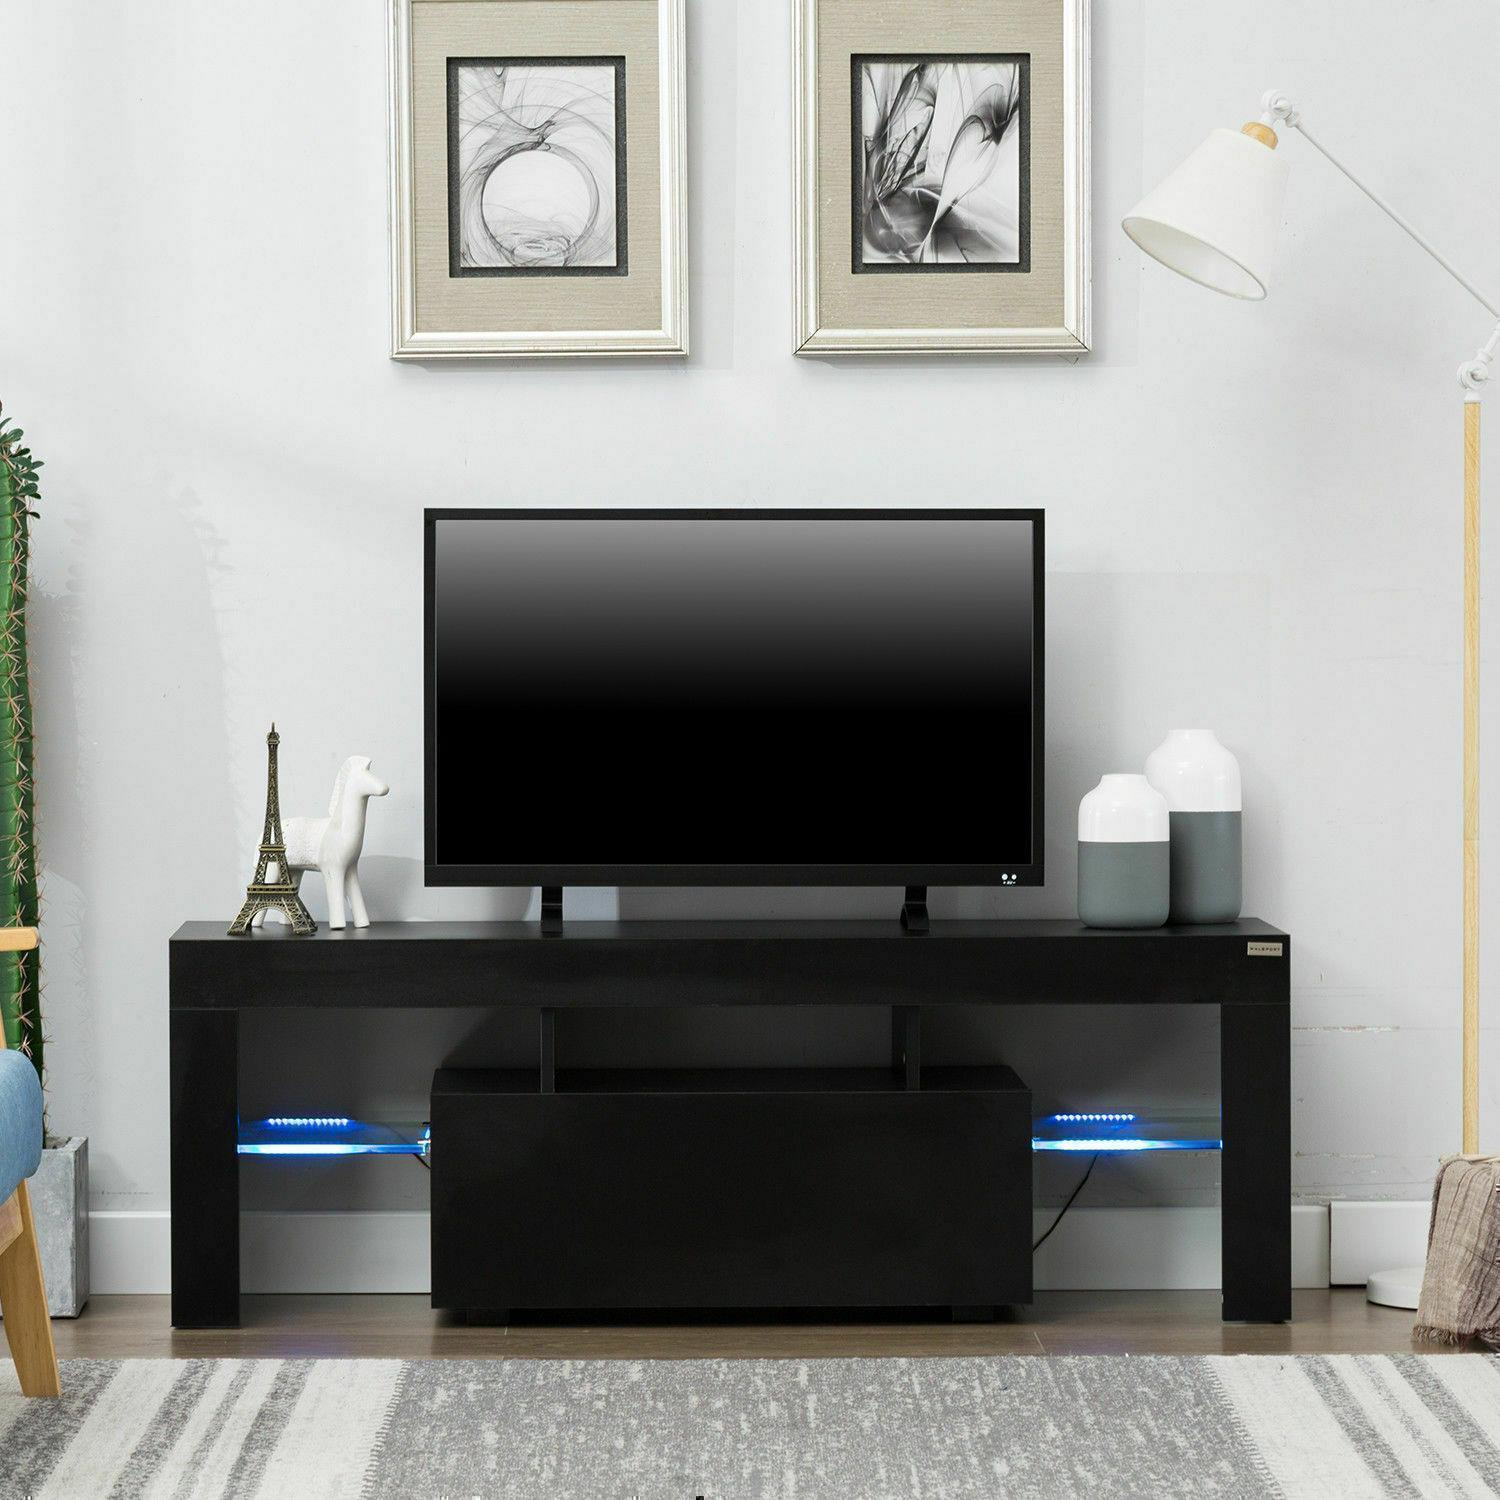 """thumbnail 8 - 51"""" Wood High Gloss LED TV Stand Entertainment Furniture Center Console Cabinet"""